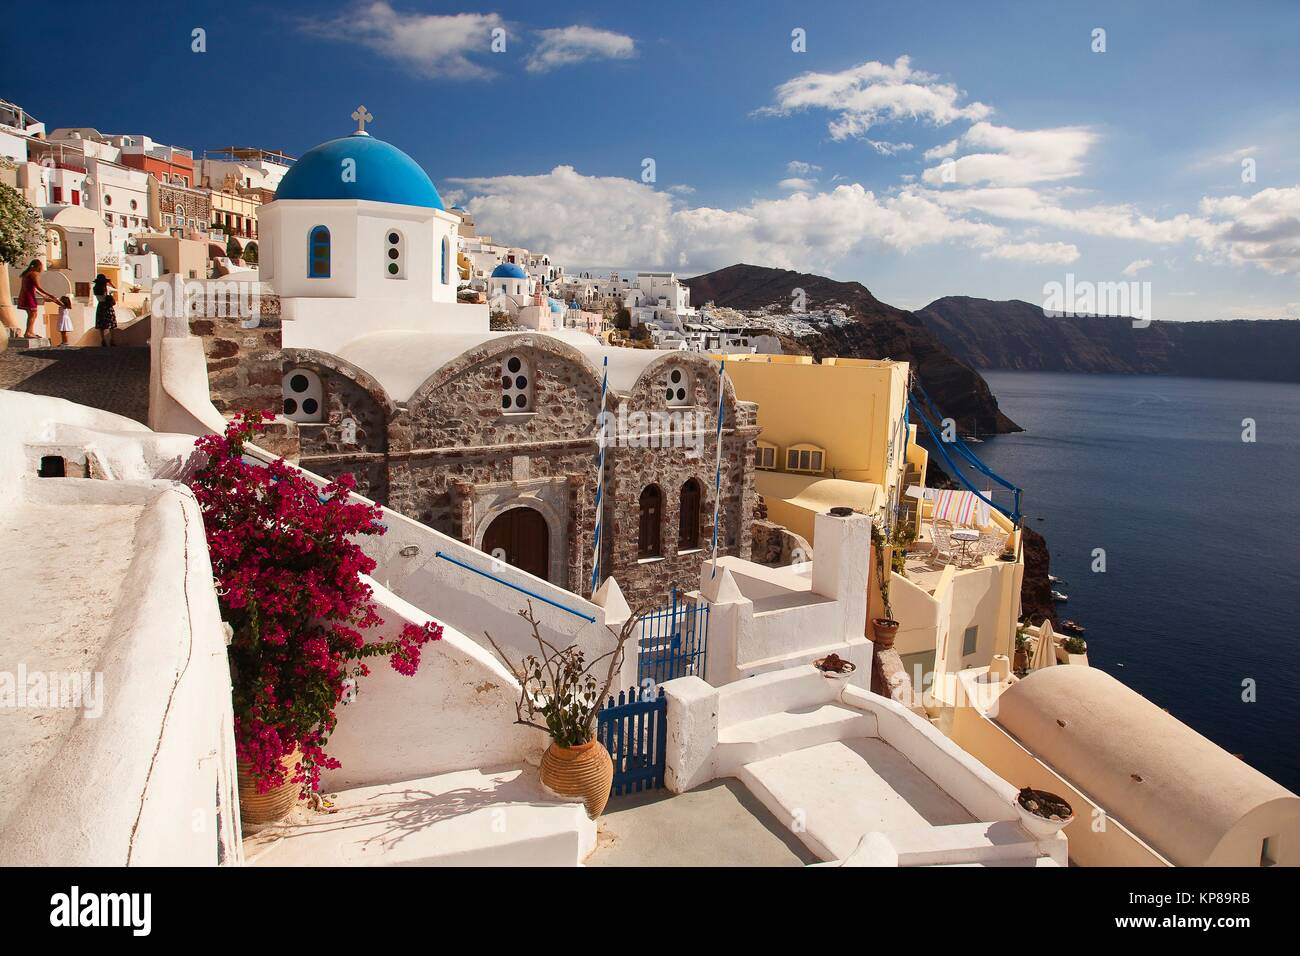 View to the blue domed churches in the Oia village by the cliff, Santorini, Cyclades Islands, Greek Islands, Greece, - Stock Image